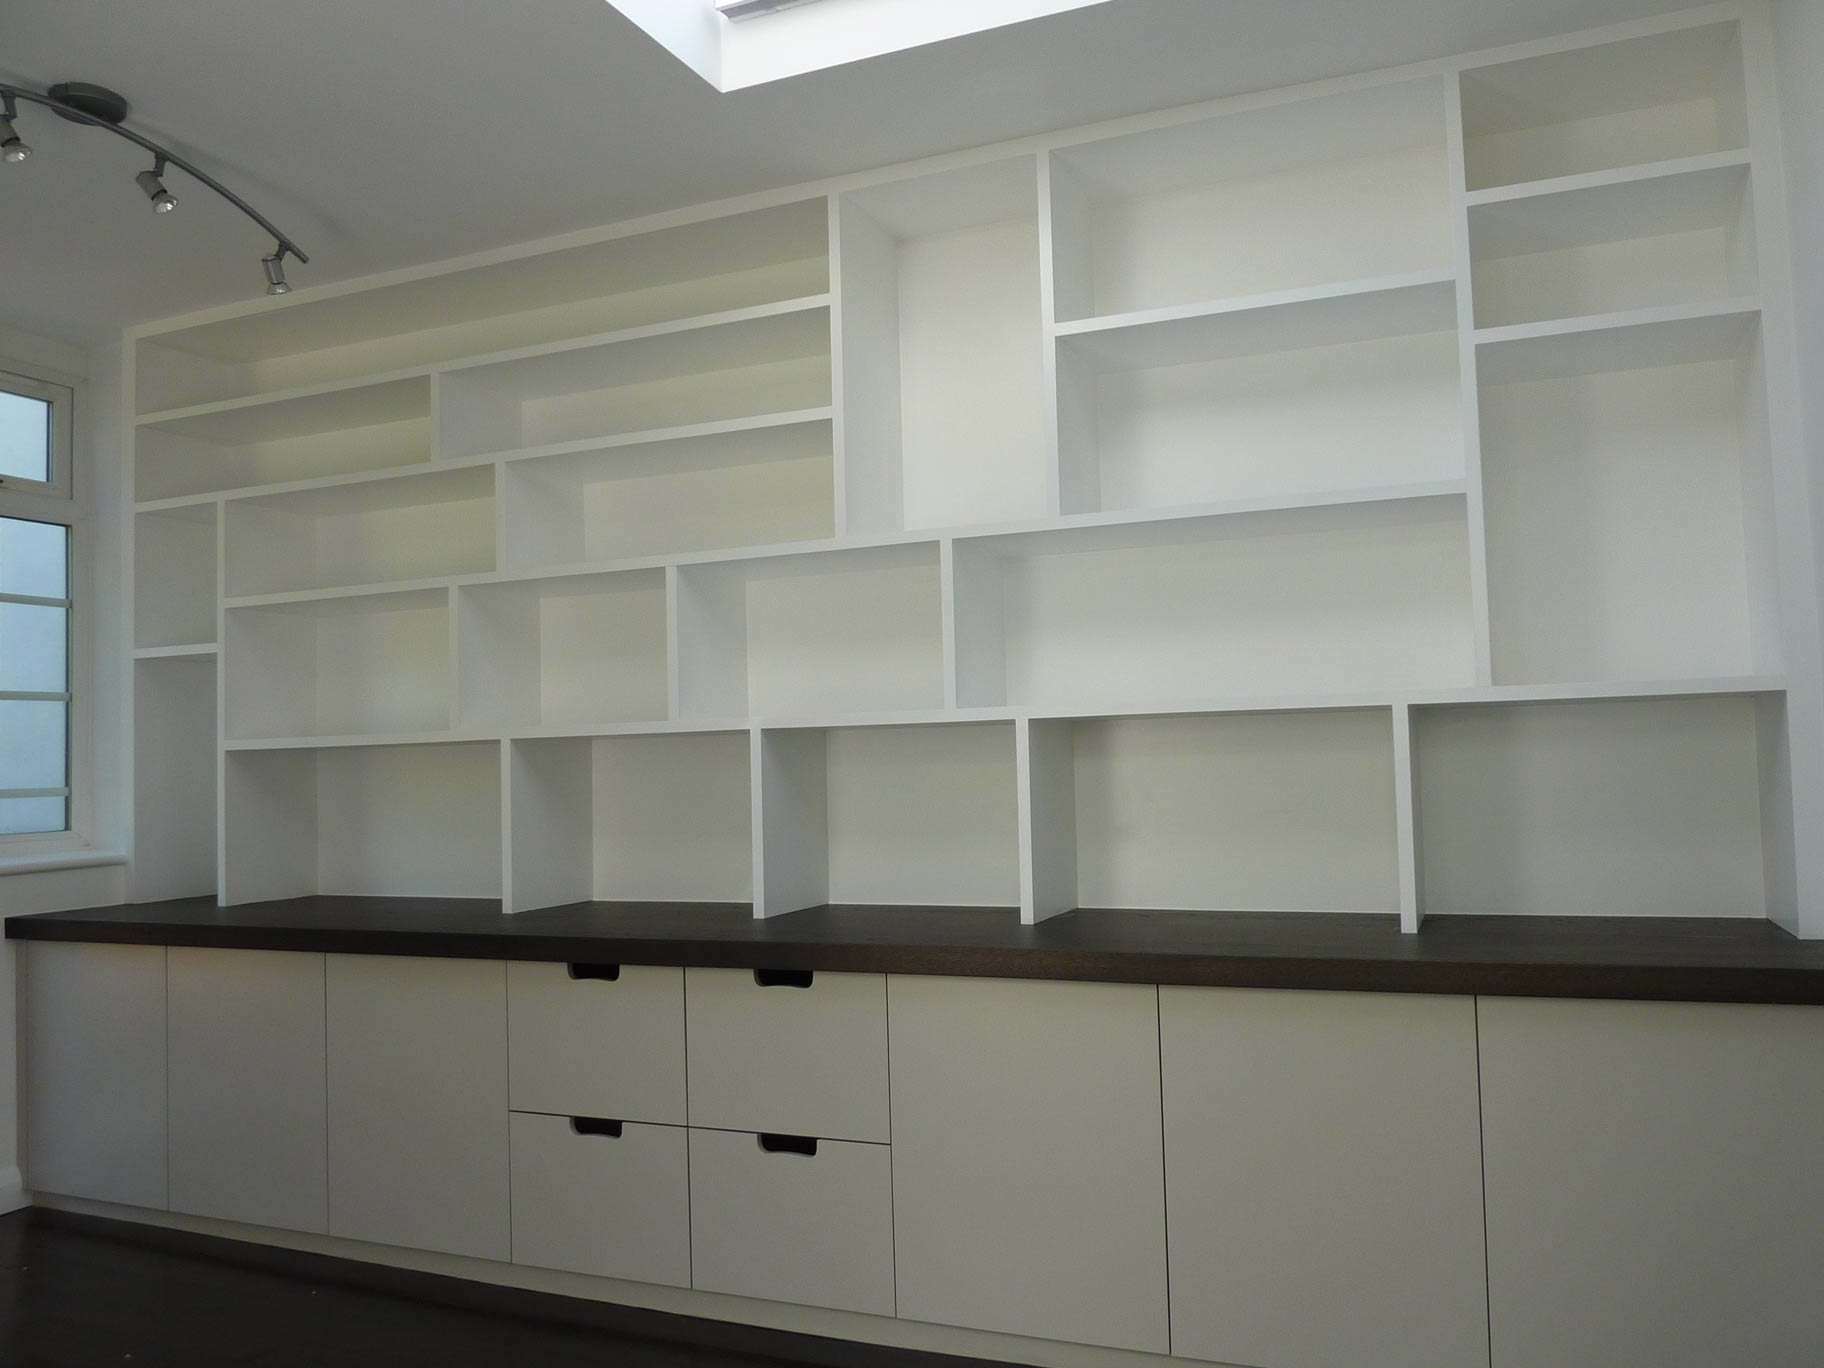 12 ideas of office wall cupboards for Study room wall cabinets